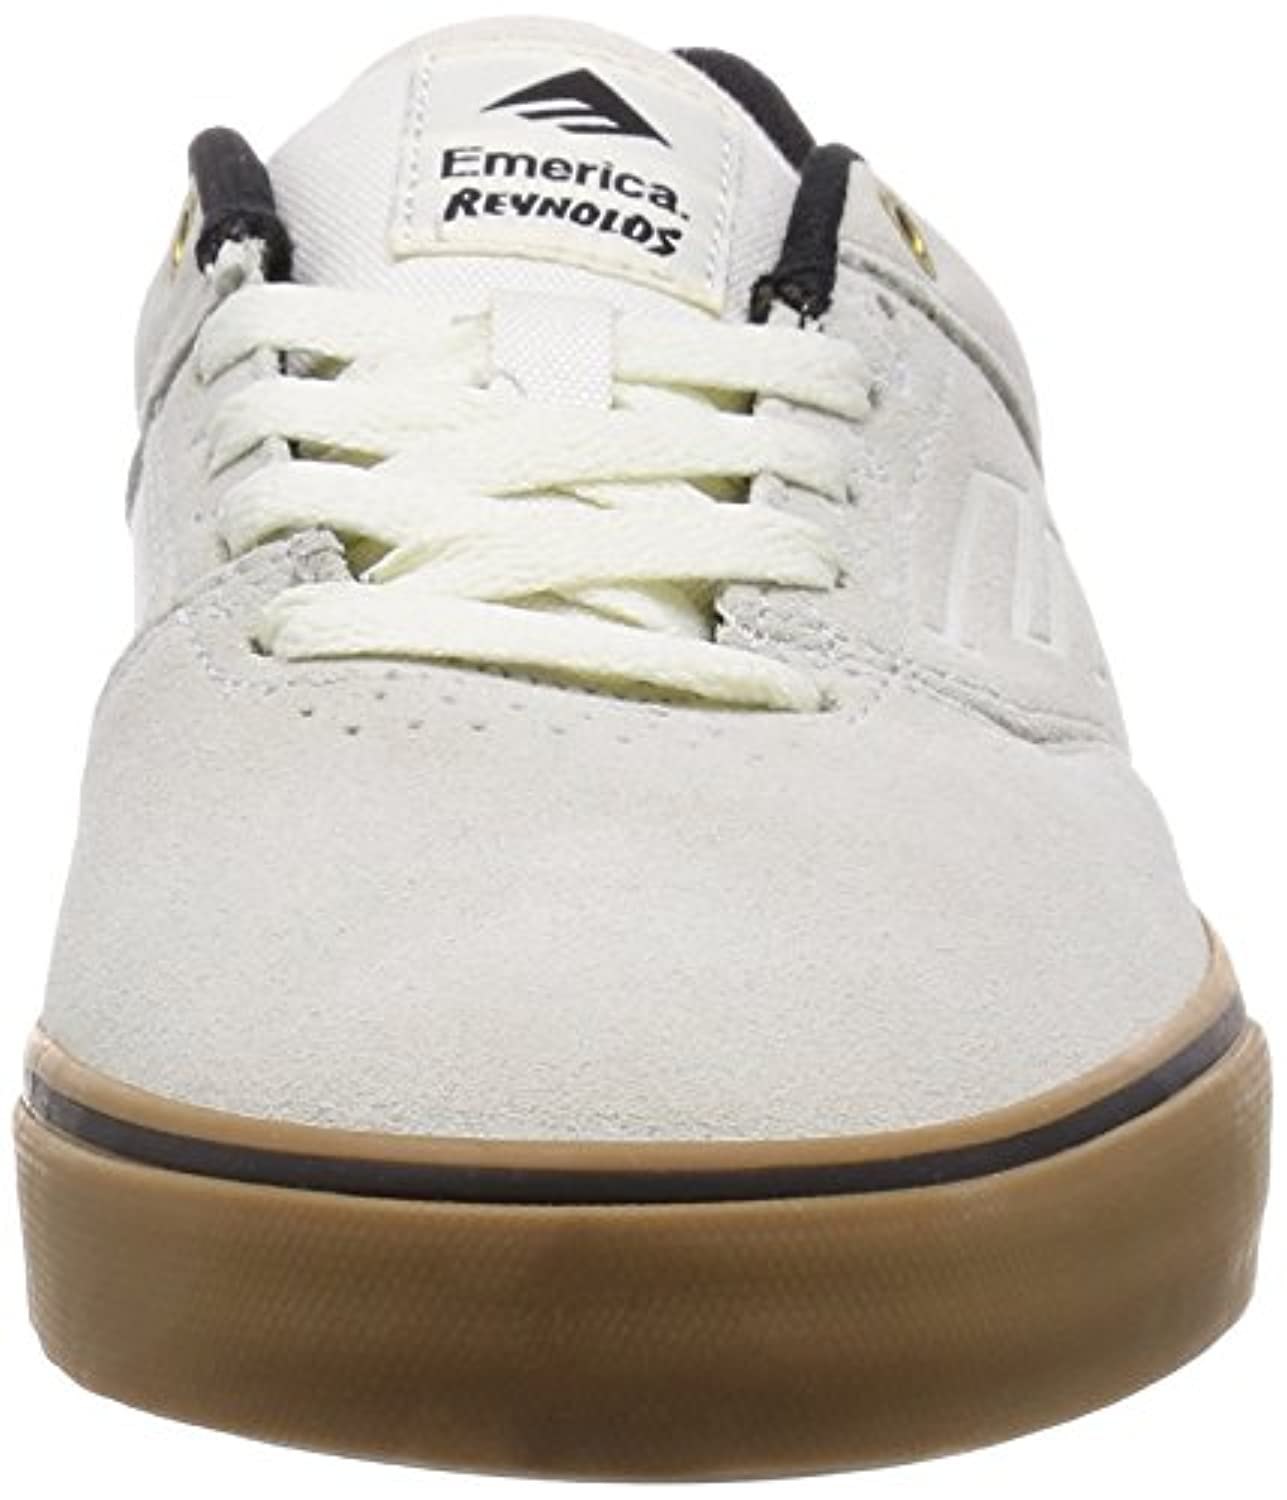 Emerica Men's Provost Slim Vulc X Mouse Skate Shoe, Black/Print, 7 M US